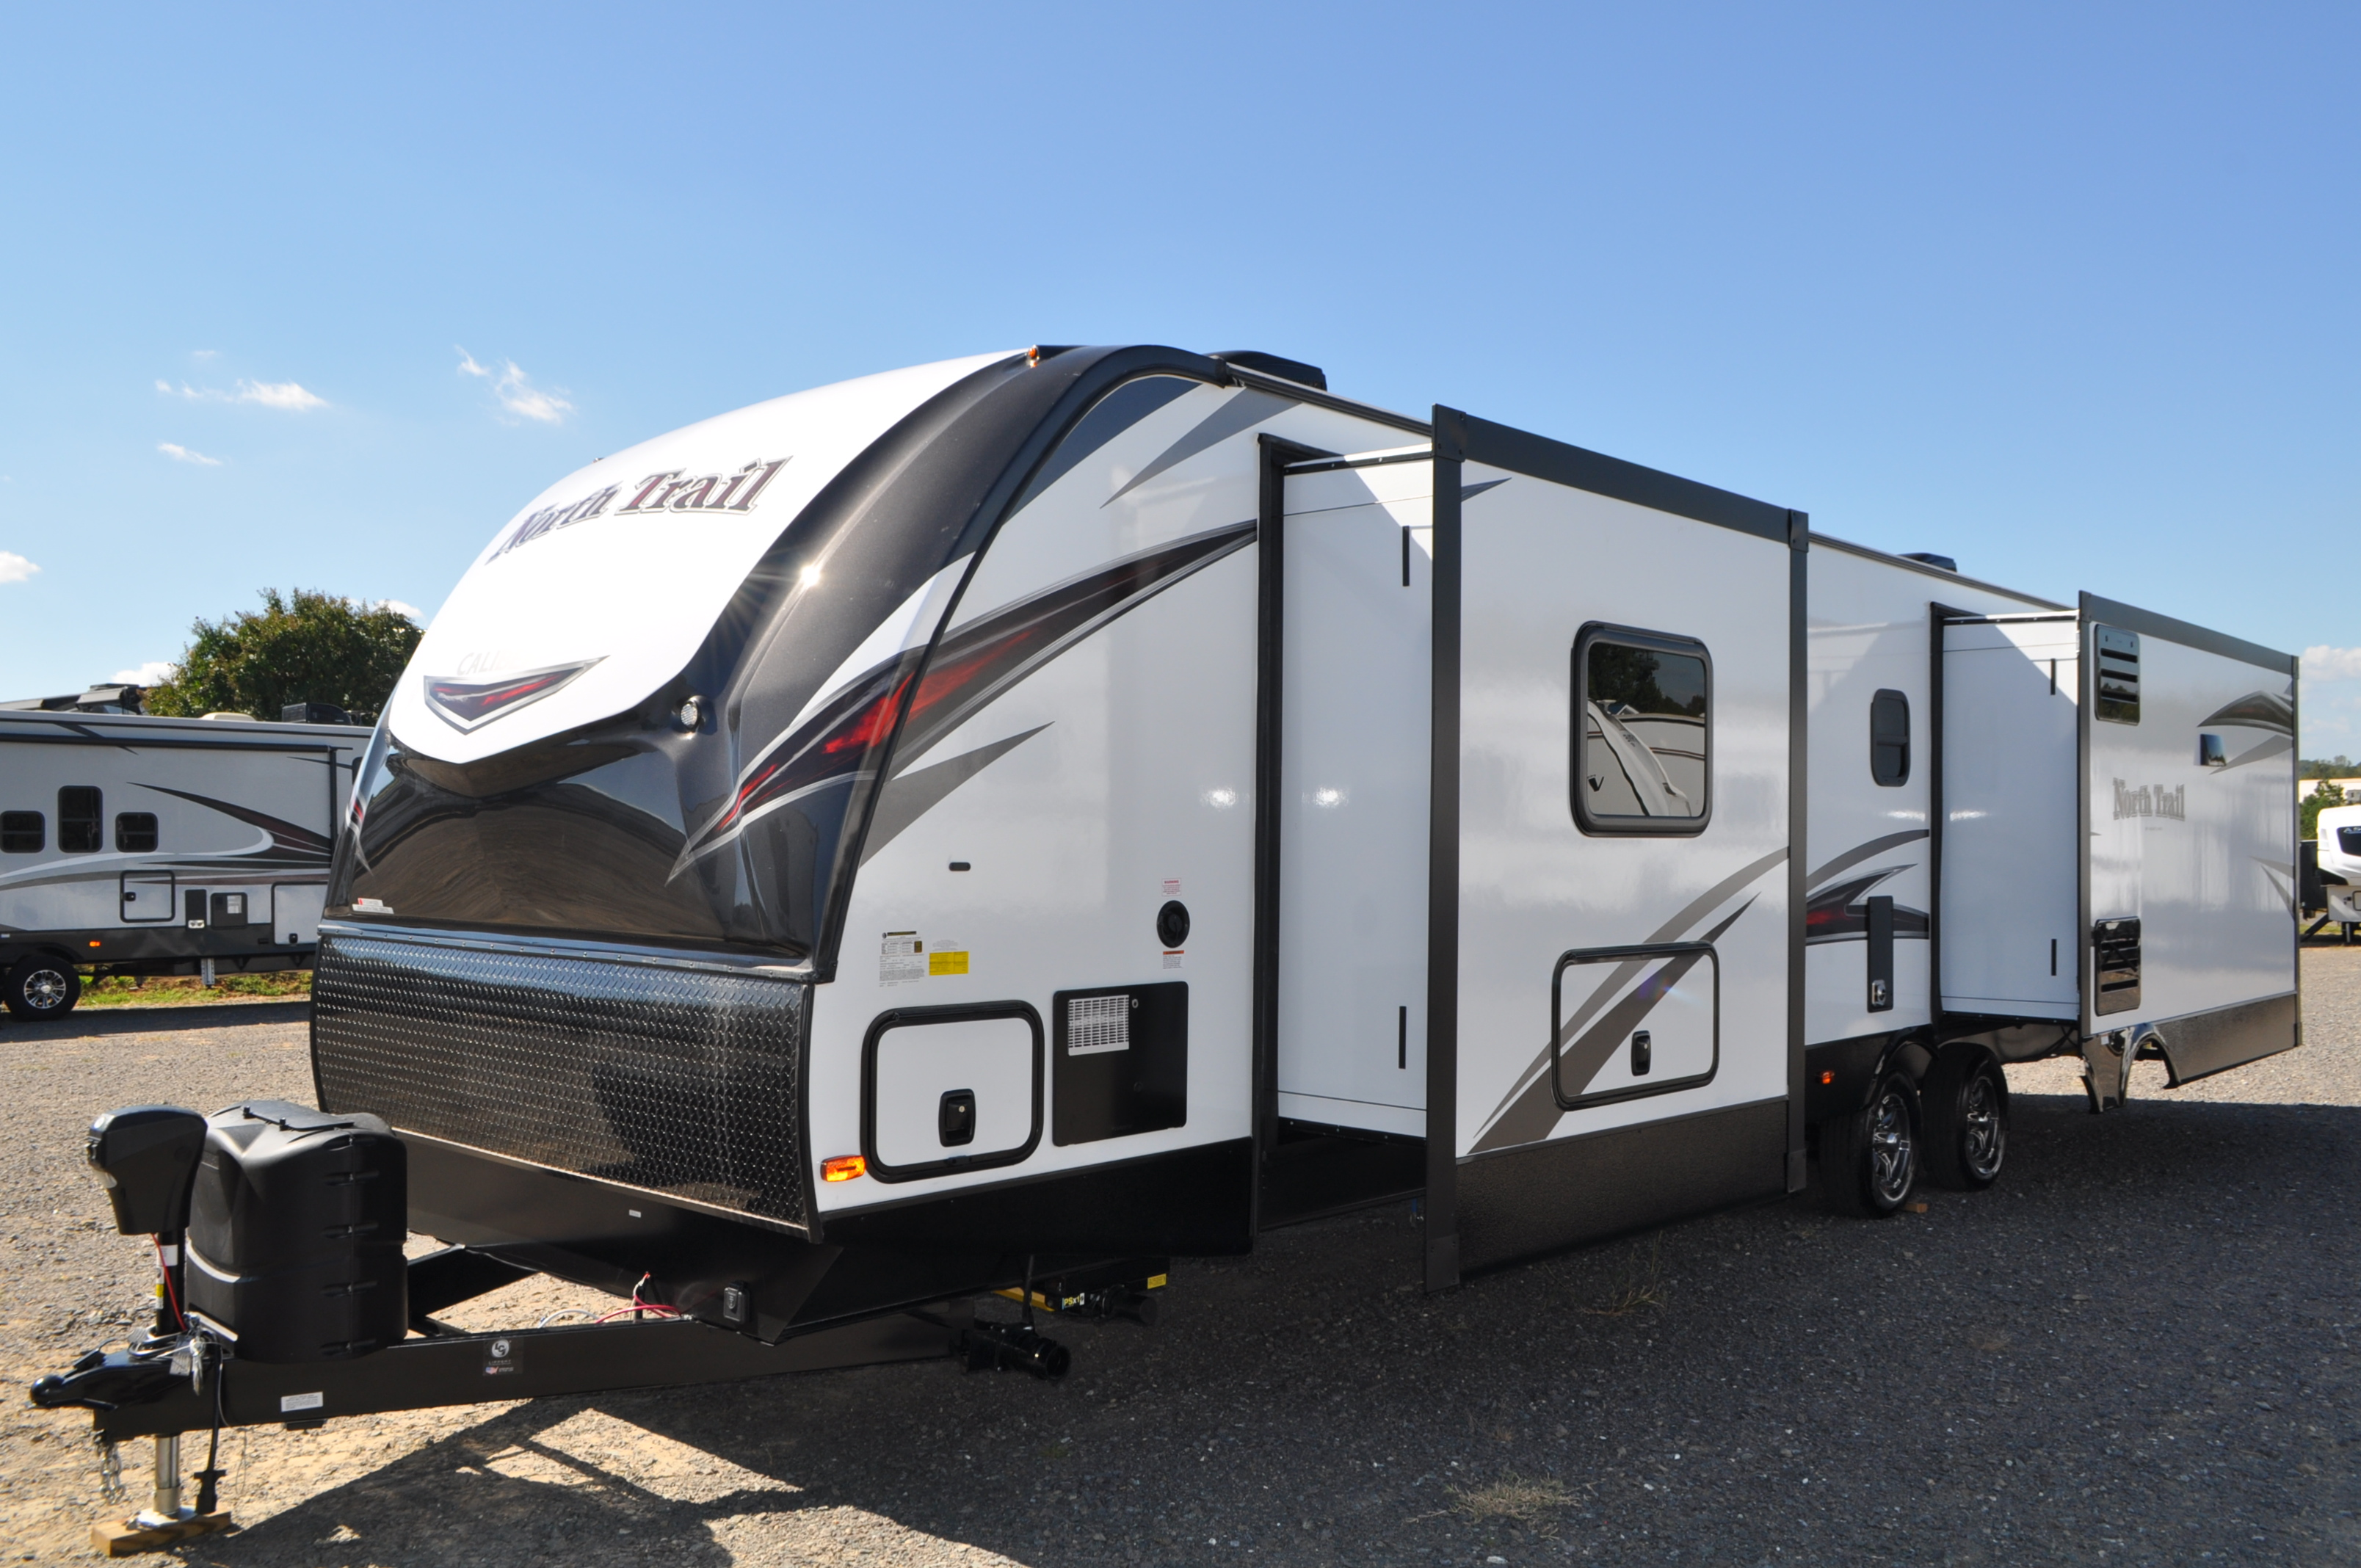 2020 Heartland North Trail 33Buds Travel Trailer